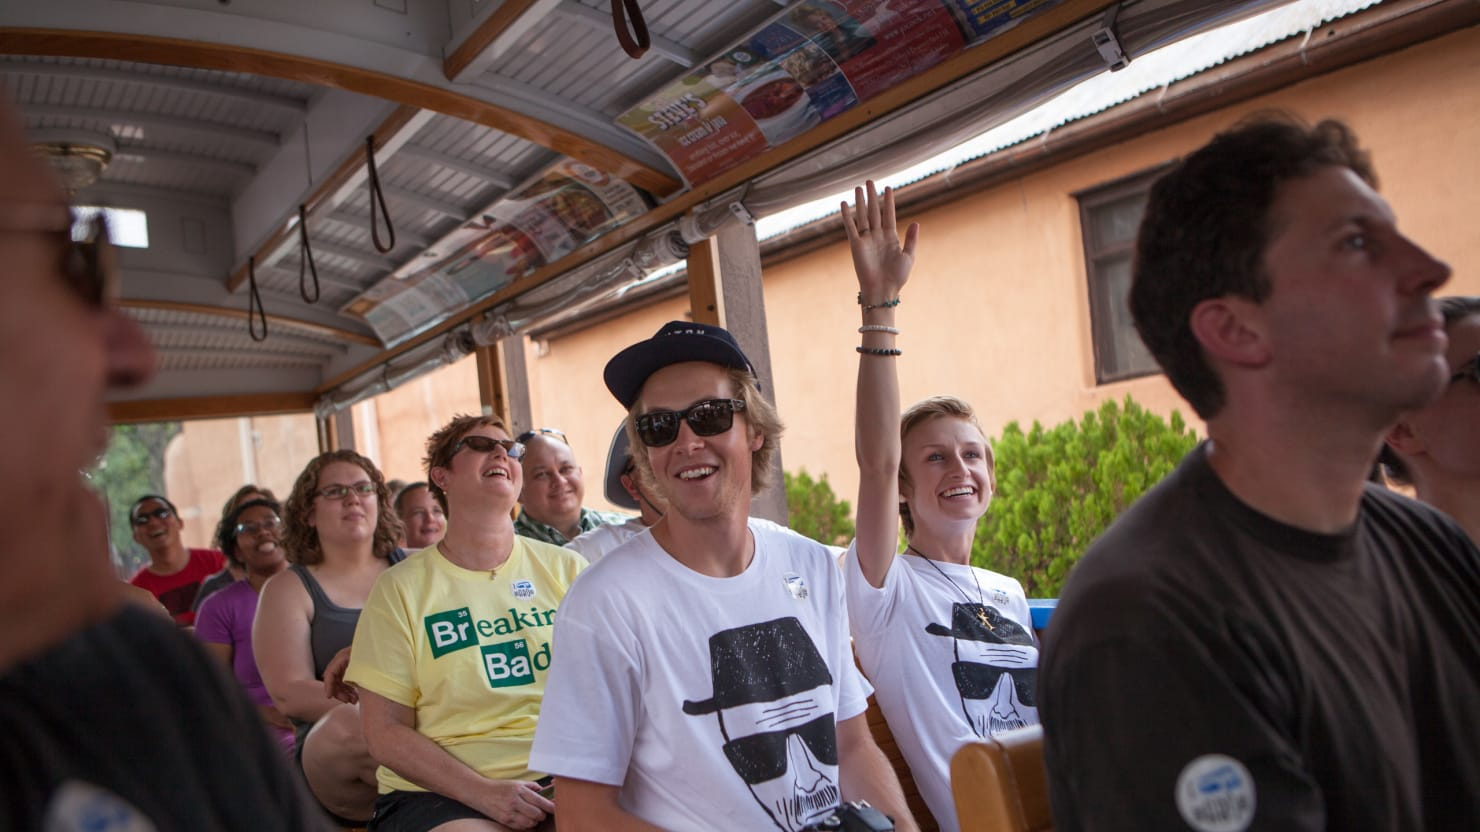 A Real-Life 'Breaking Bad' Tour of Albuquerque